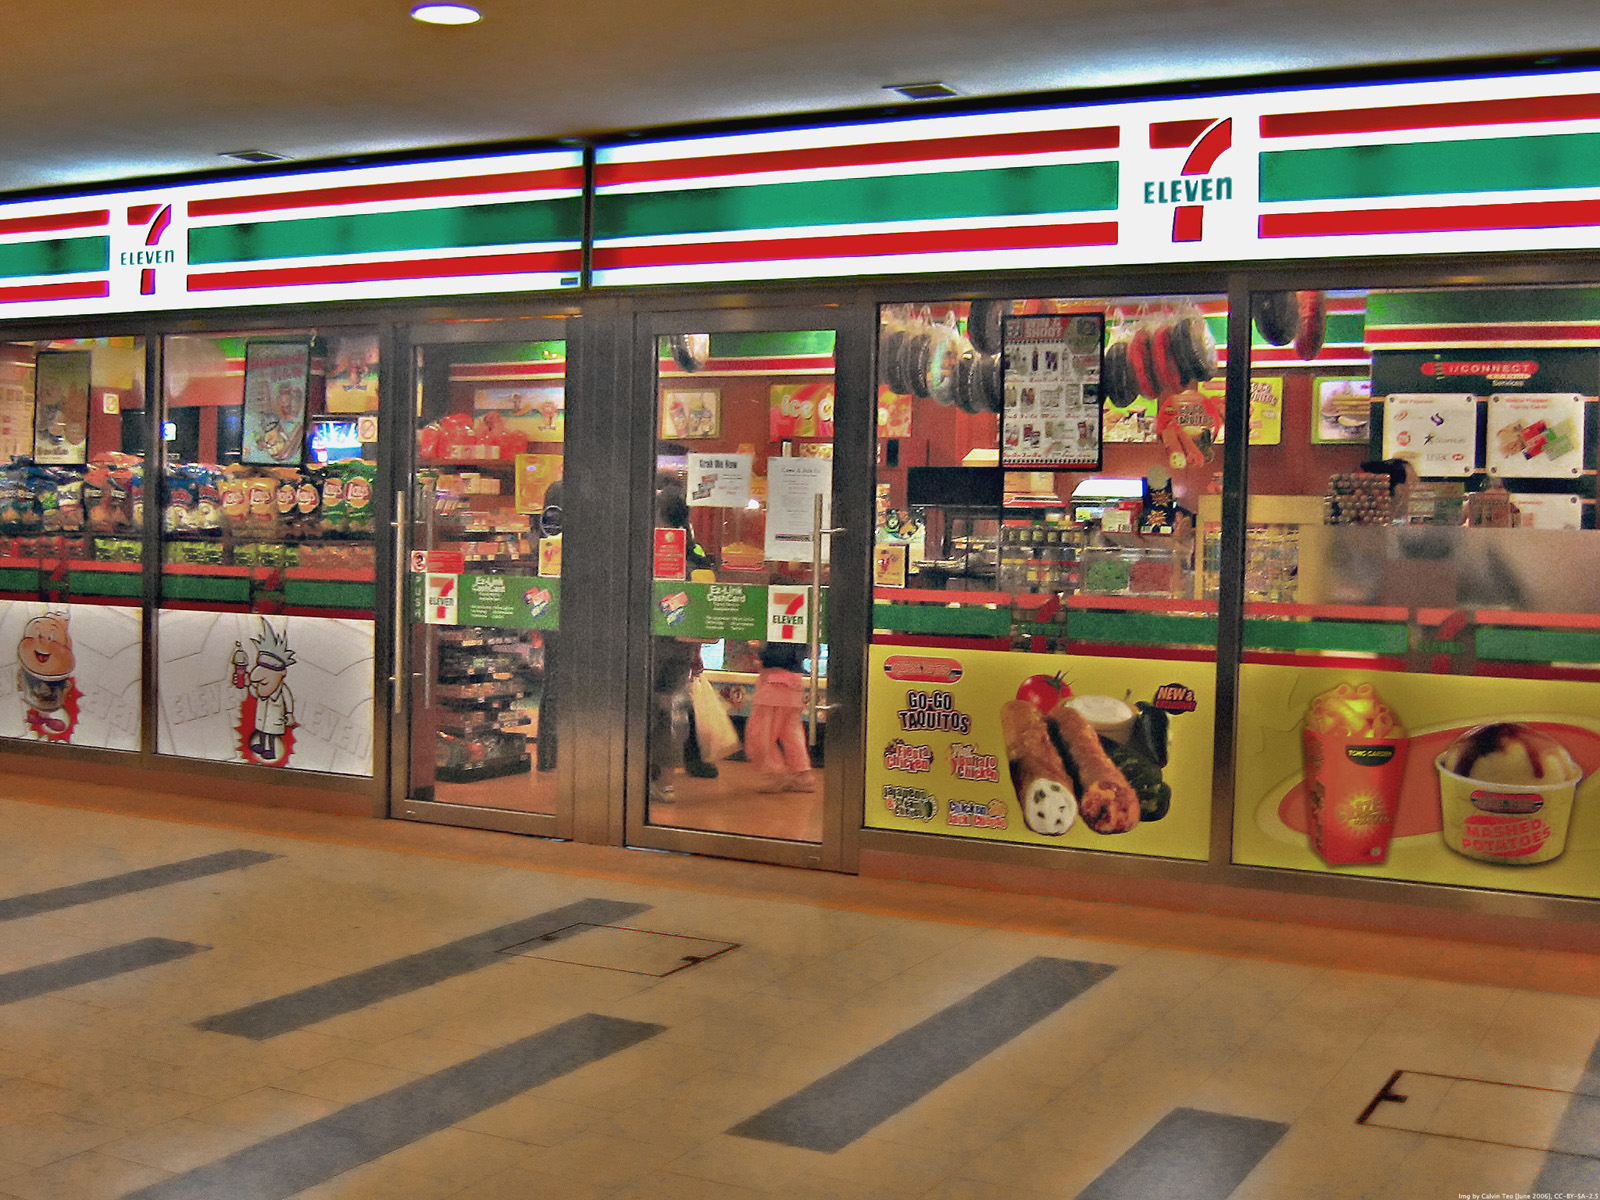 Real Gaming Accepting Deposits From Nevada 7 Eleven Amp Family Dollar Stores